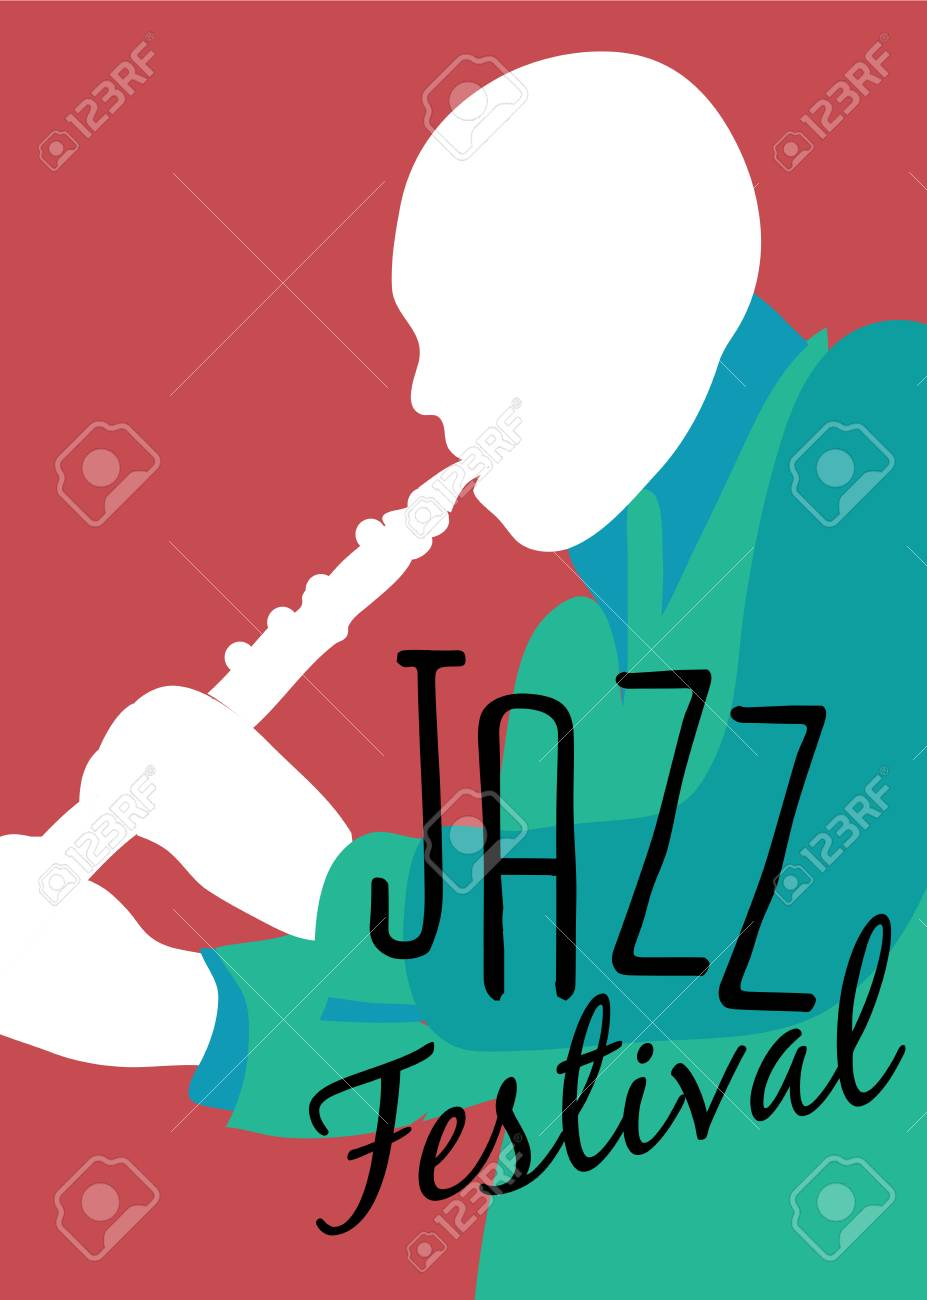 Retro Jazz festival Poster, illustration of Jazz band and cool